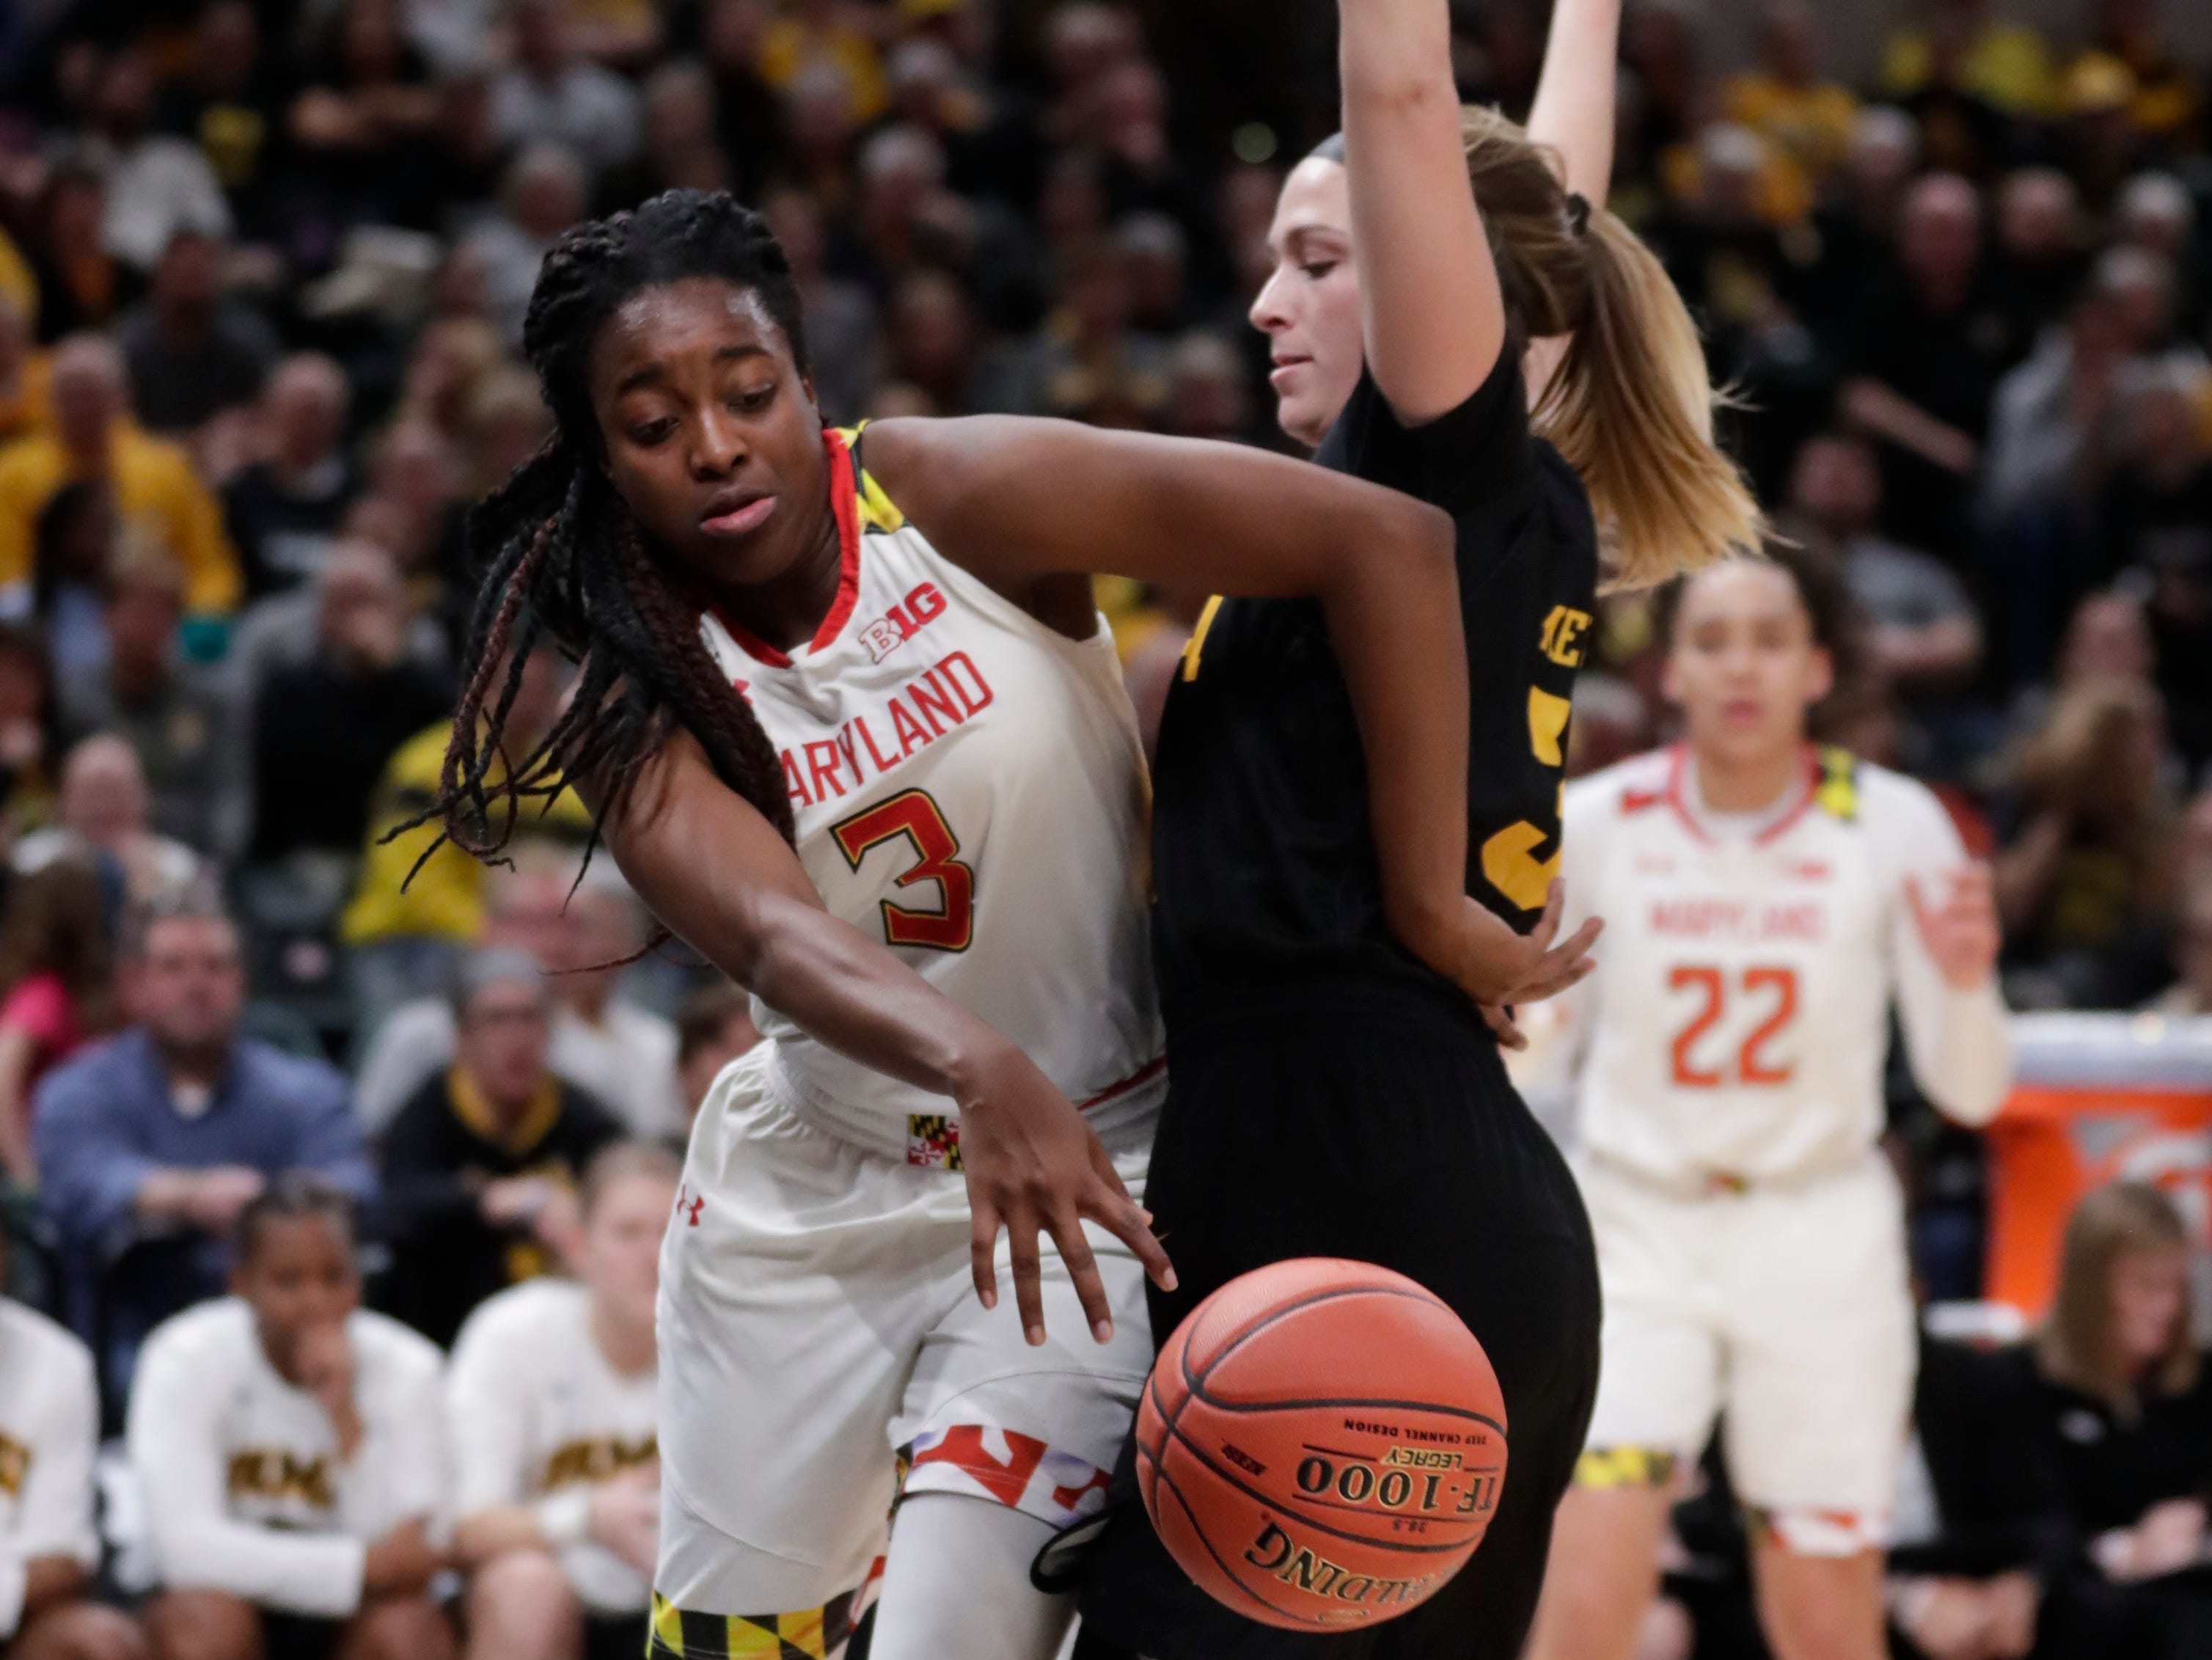 Maryland guard Channise Lewis (3) gets pushed out-of-bounds by Iowa guard Makenzie Meyer (3) in the first half of an NCAA college basketball championship game at the Big Ten Conference tournament in Indianapolis, Sunday, March 10, 2019.